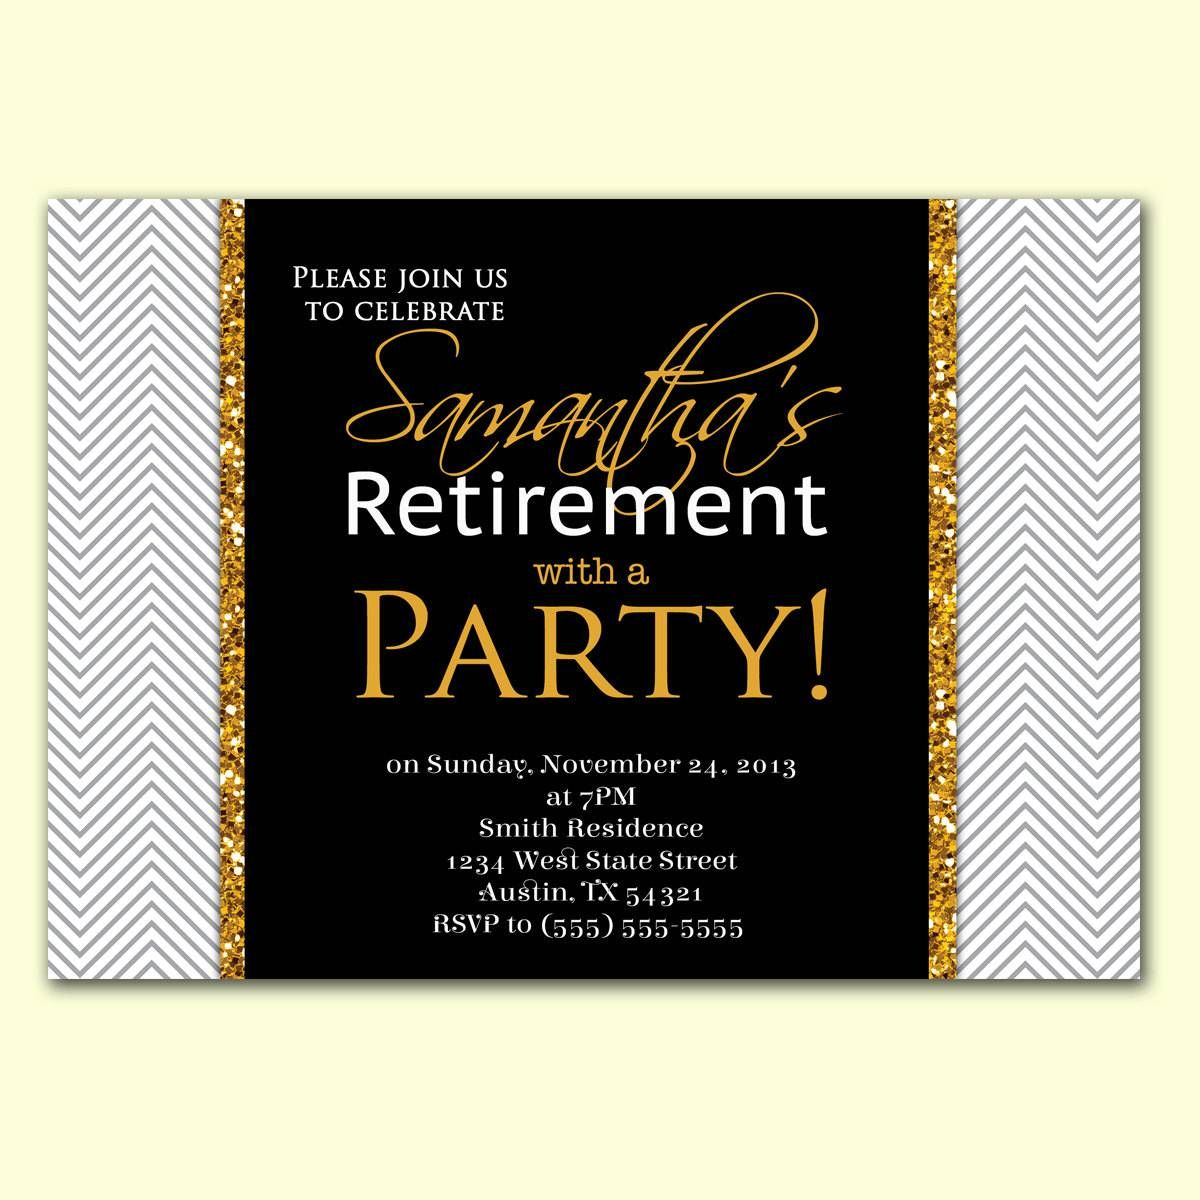 Retirement Party Invitation Wording In Hindi Invites Retirement